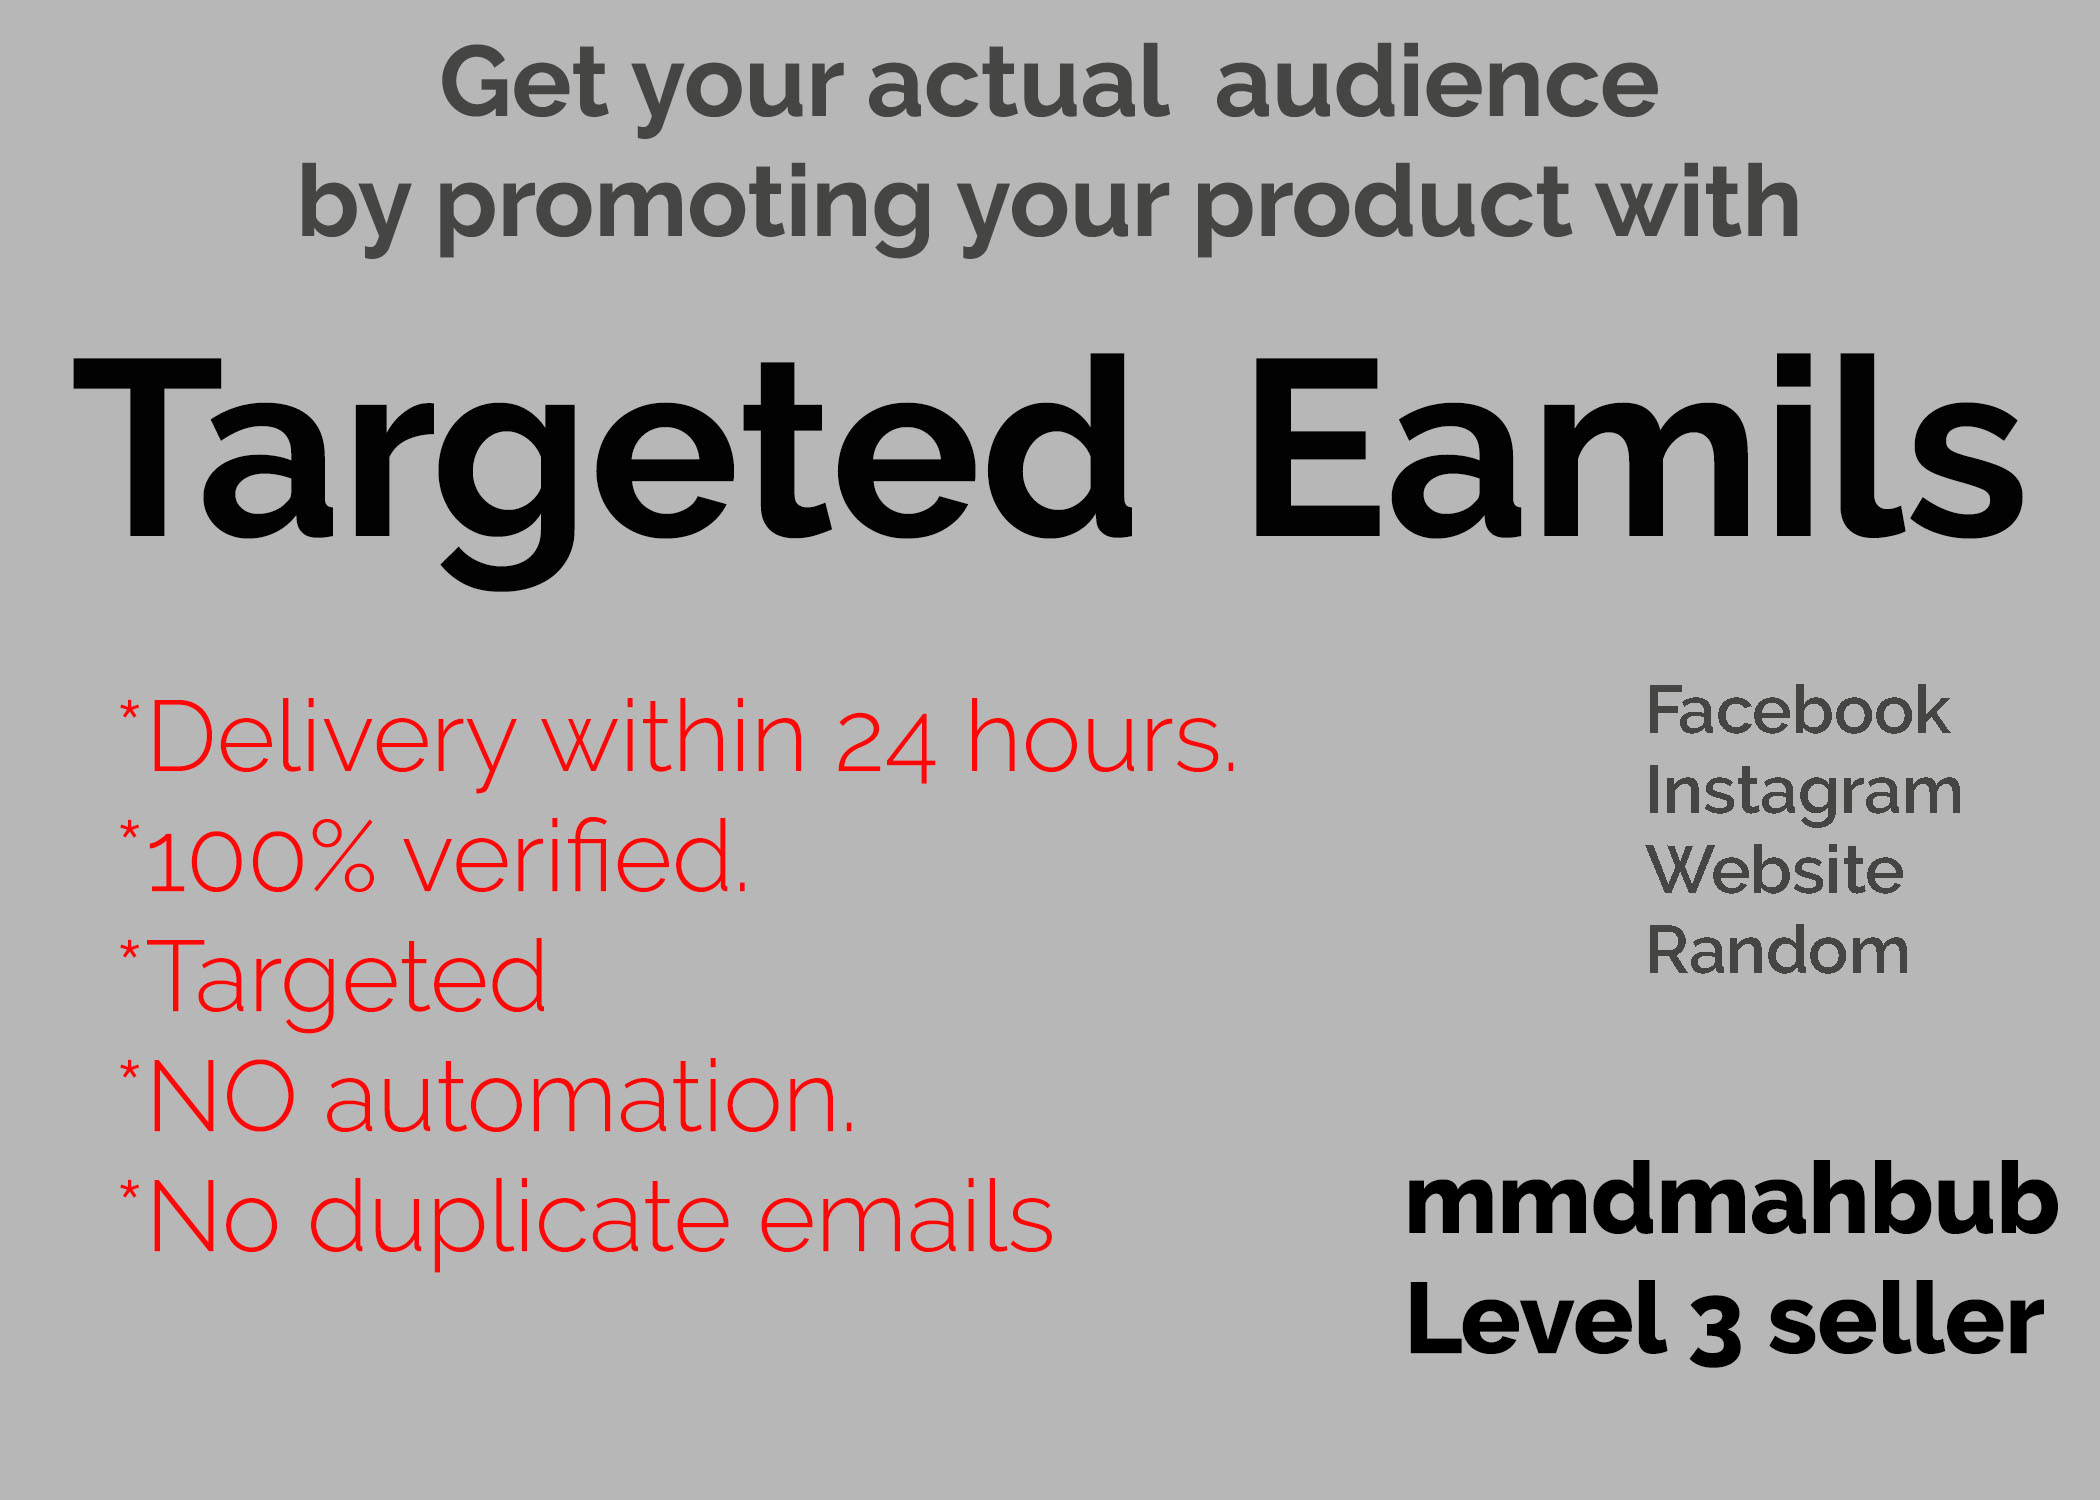 Get 10,000 targeted email leads